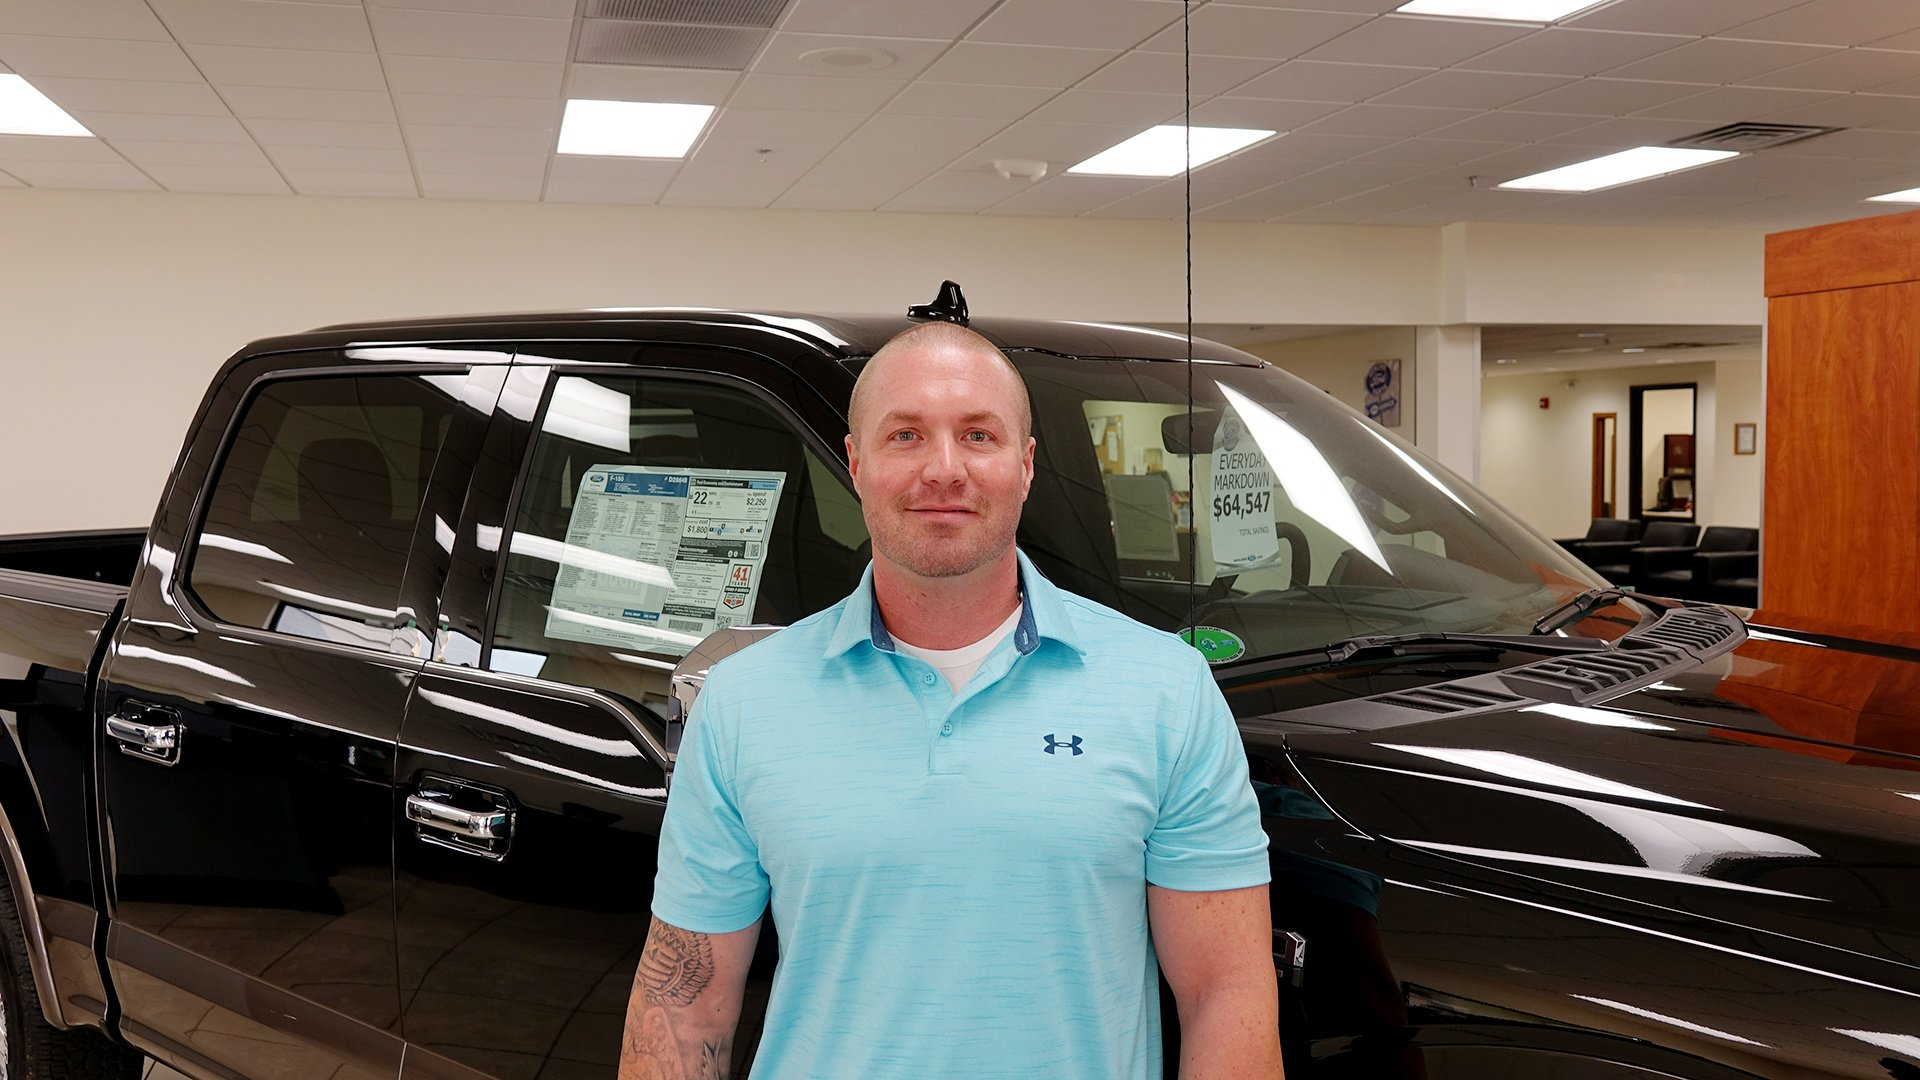 Meet-Corey-Rennich-from-Eide-Ford